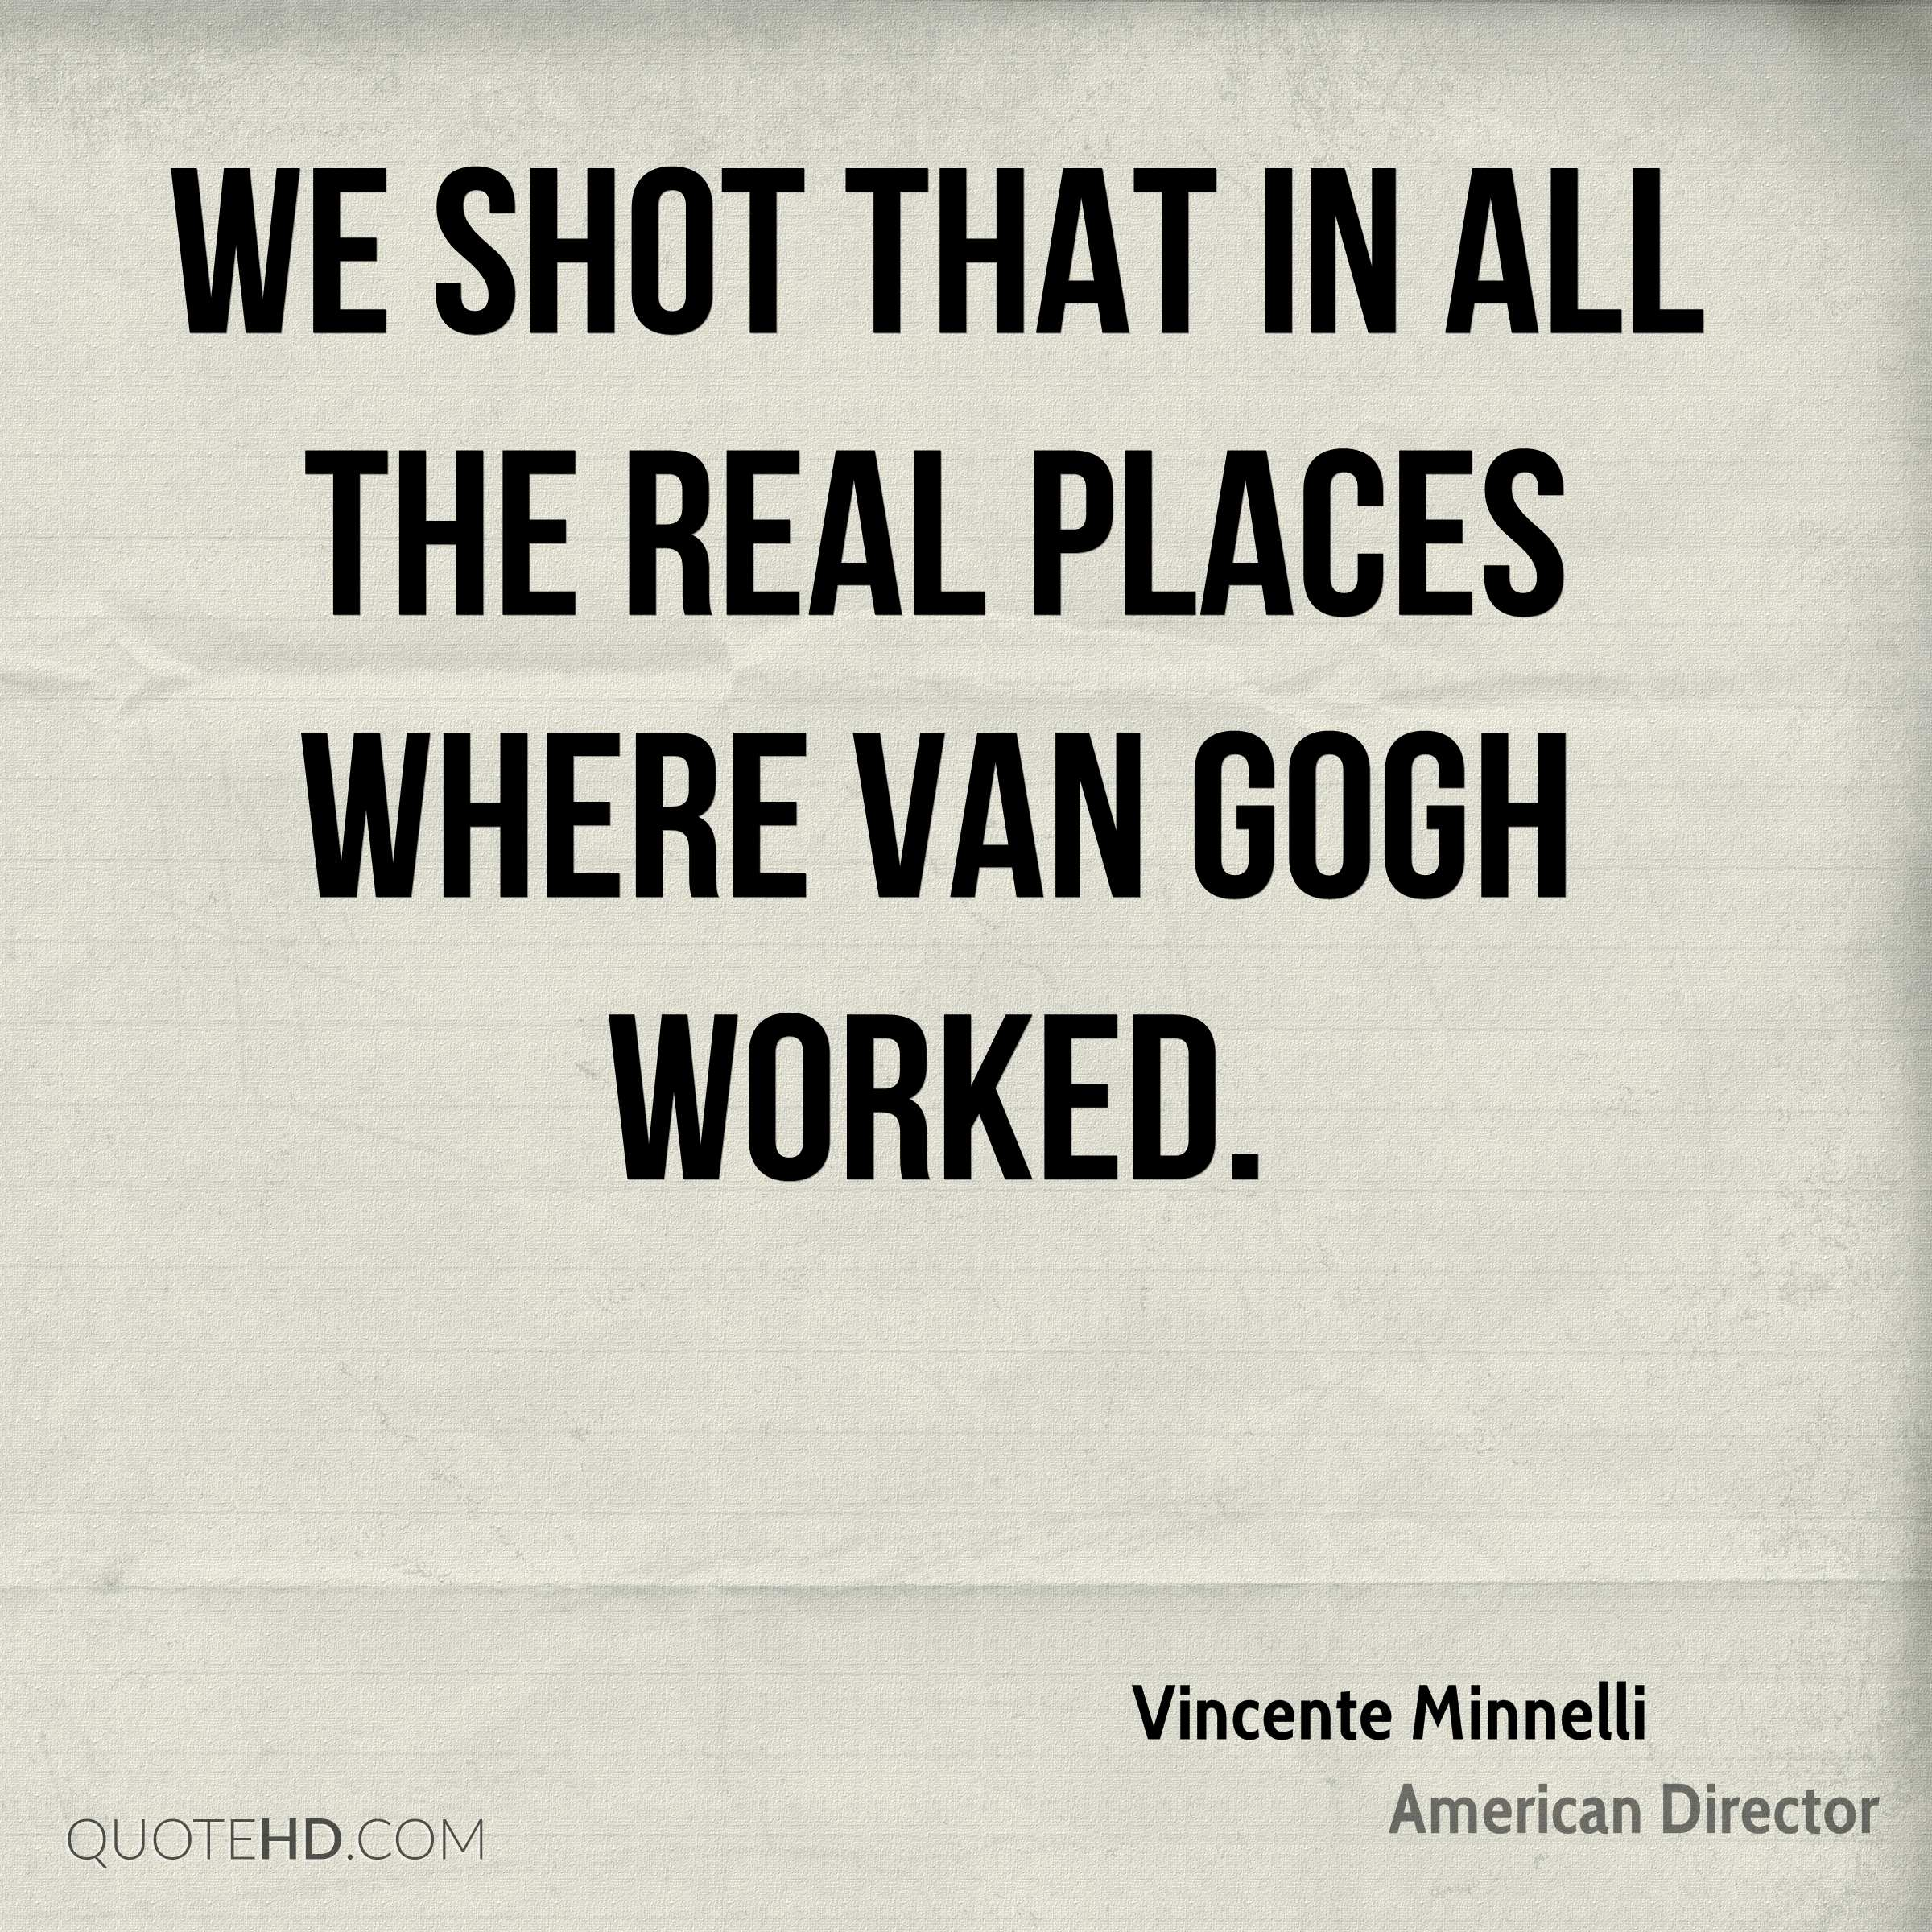 We shot that in all the real places where Van Gogh worked.